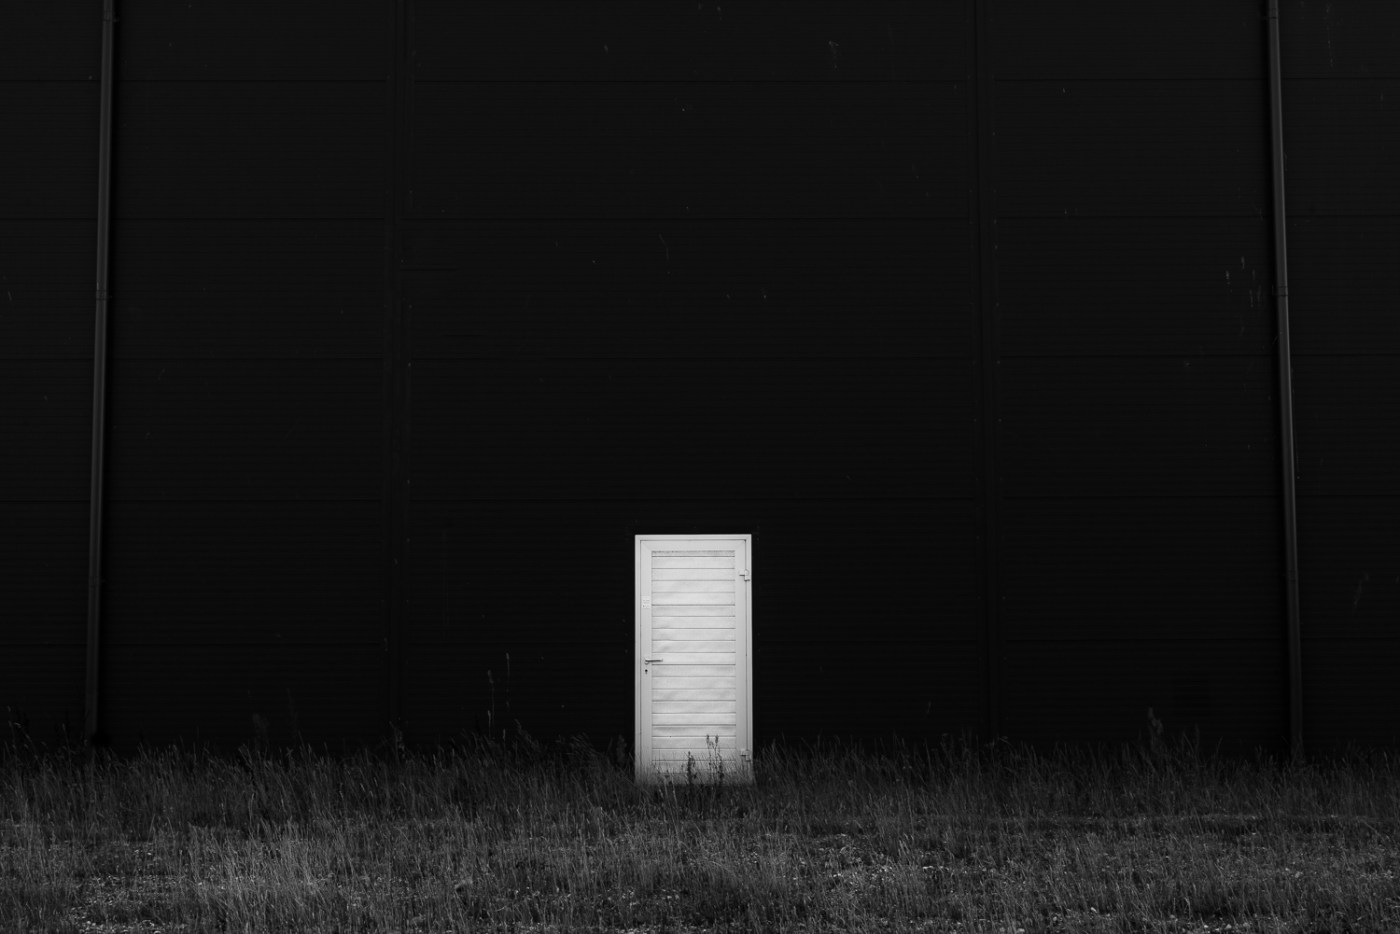 Portal - a photo by Eirik Jeistad